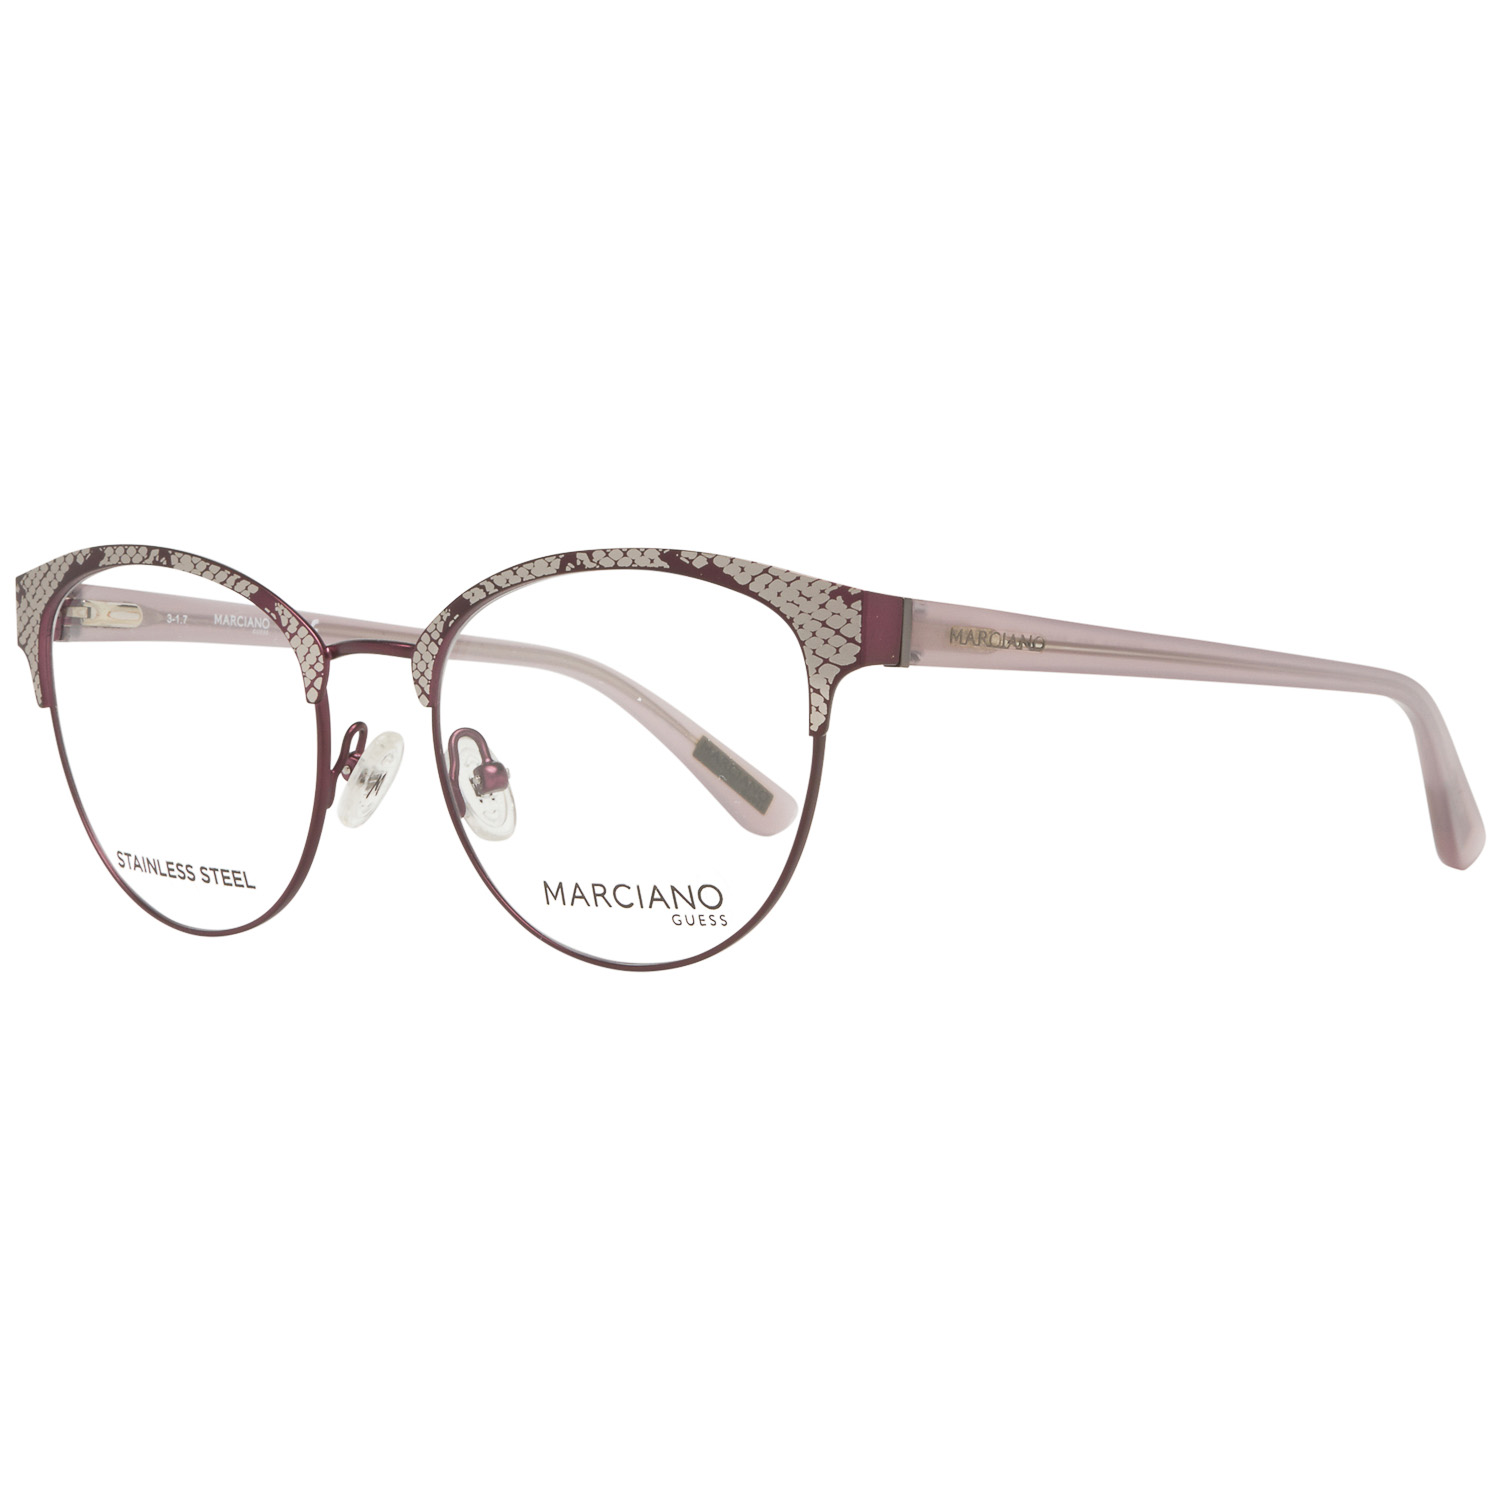 Guess by Marciano Optical Frame GM0317 082 50 Burgundy